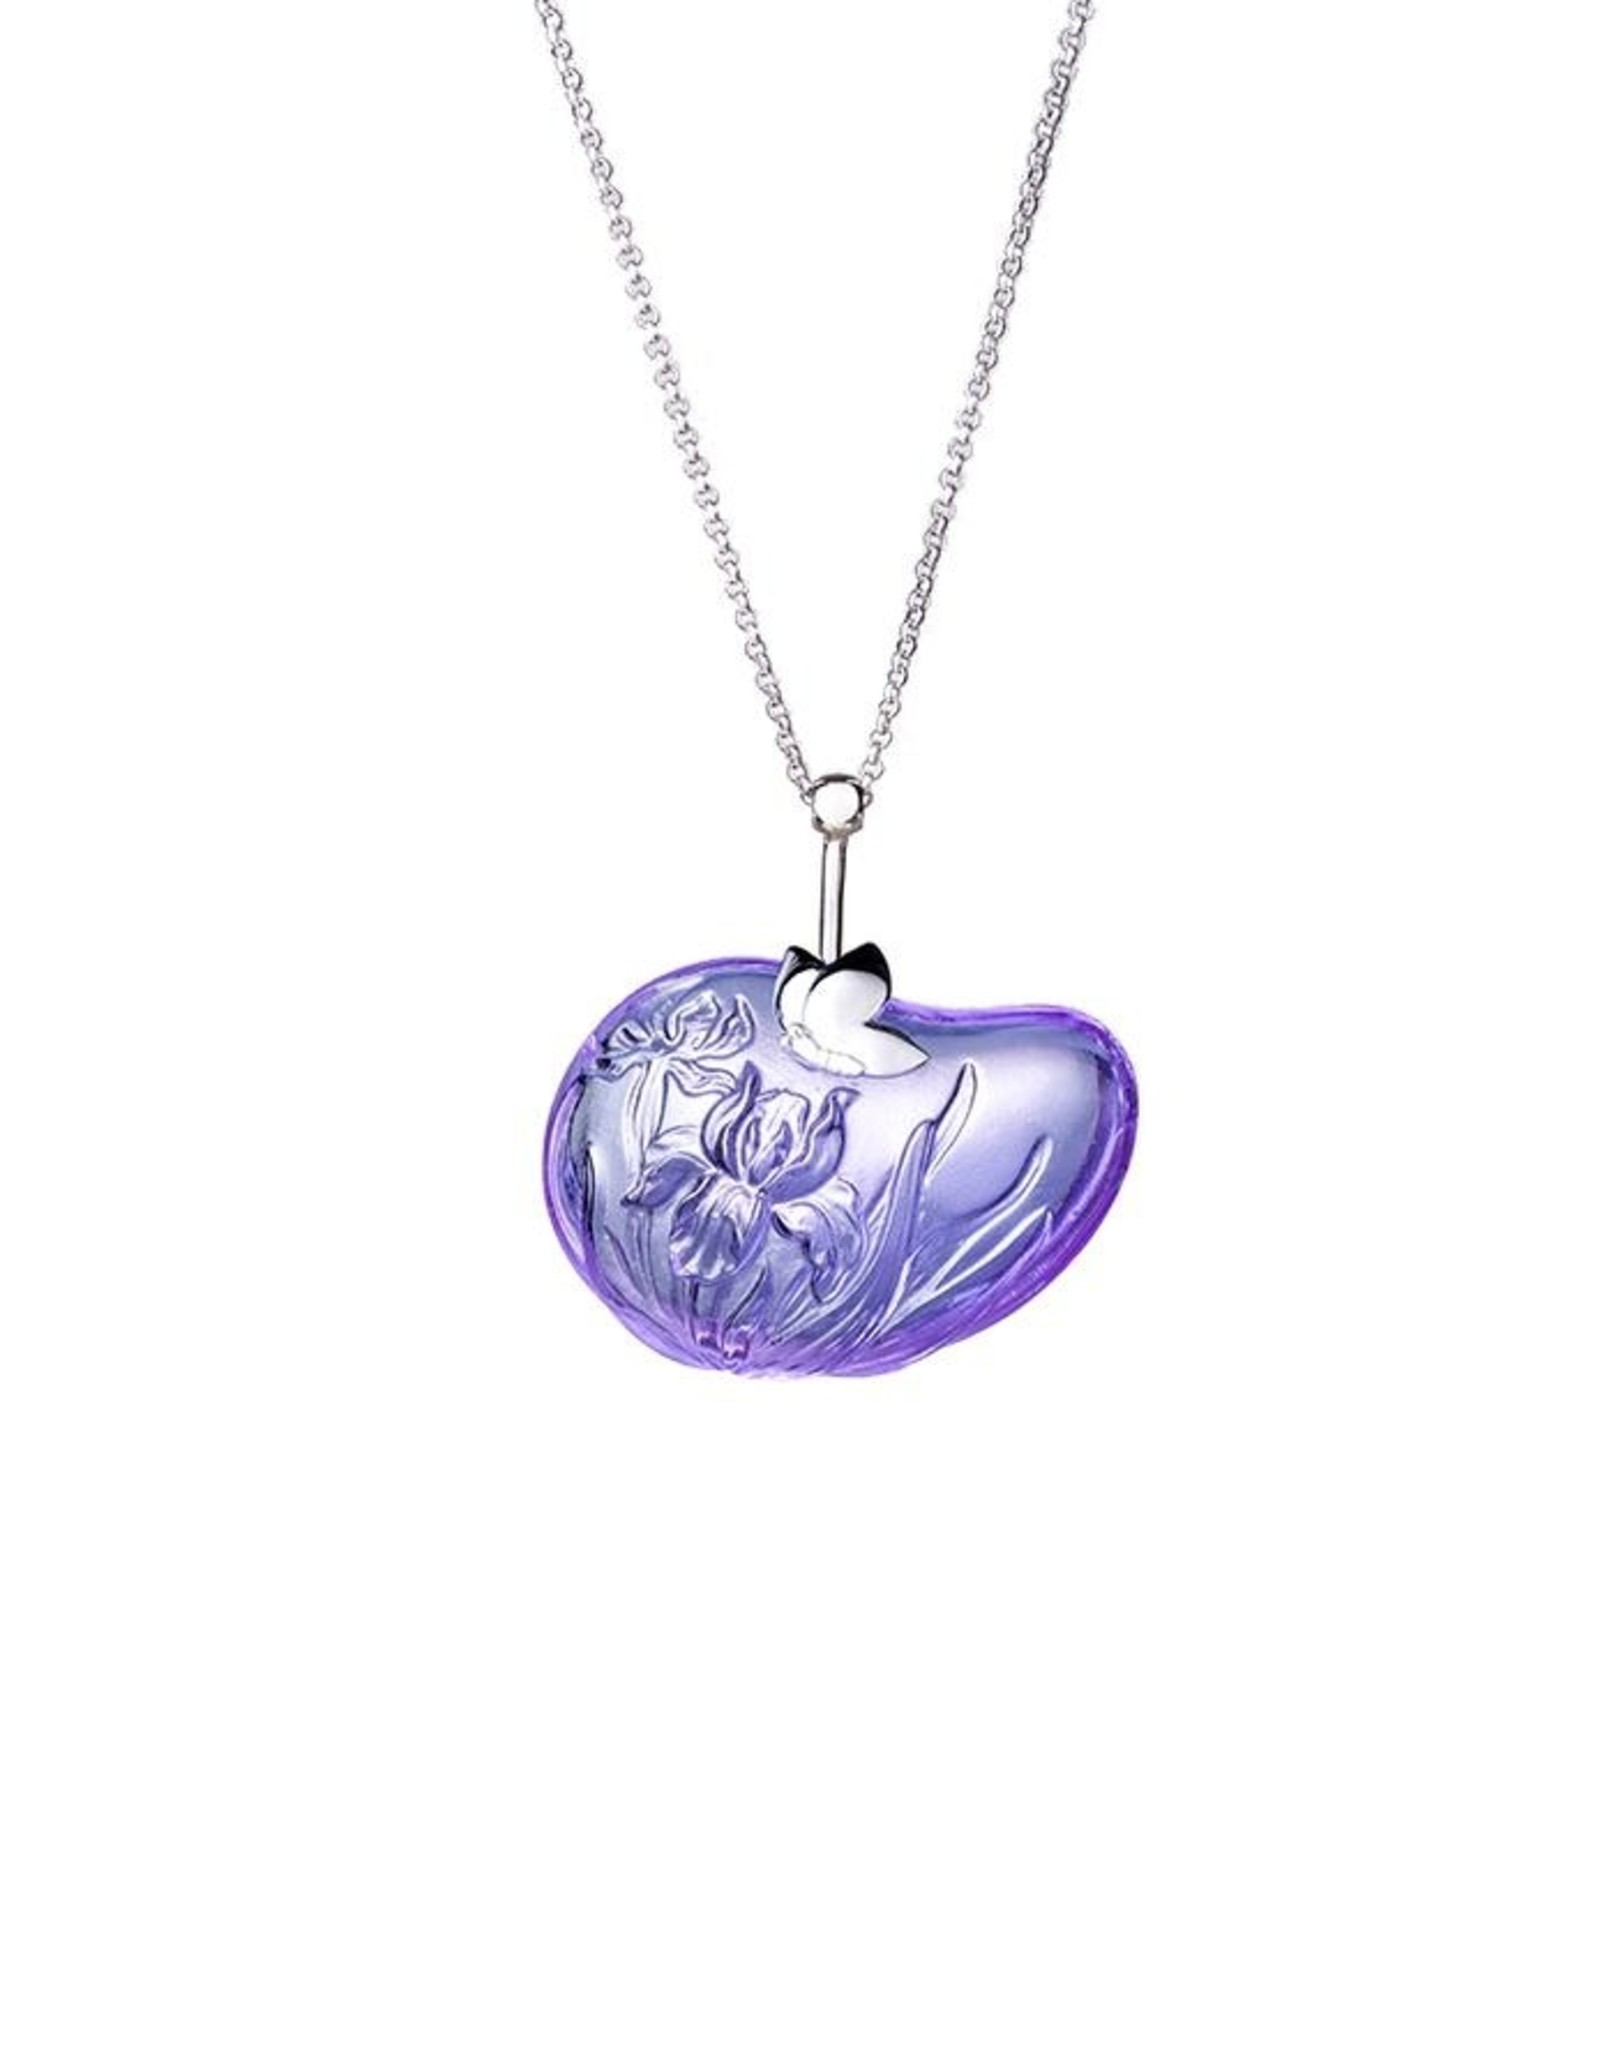 "LIULI Crystal Art Crystal and Sterling Silver "" Messenger of Freedom"" Iris Pendant Necklace in Violet"